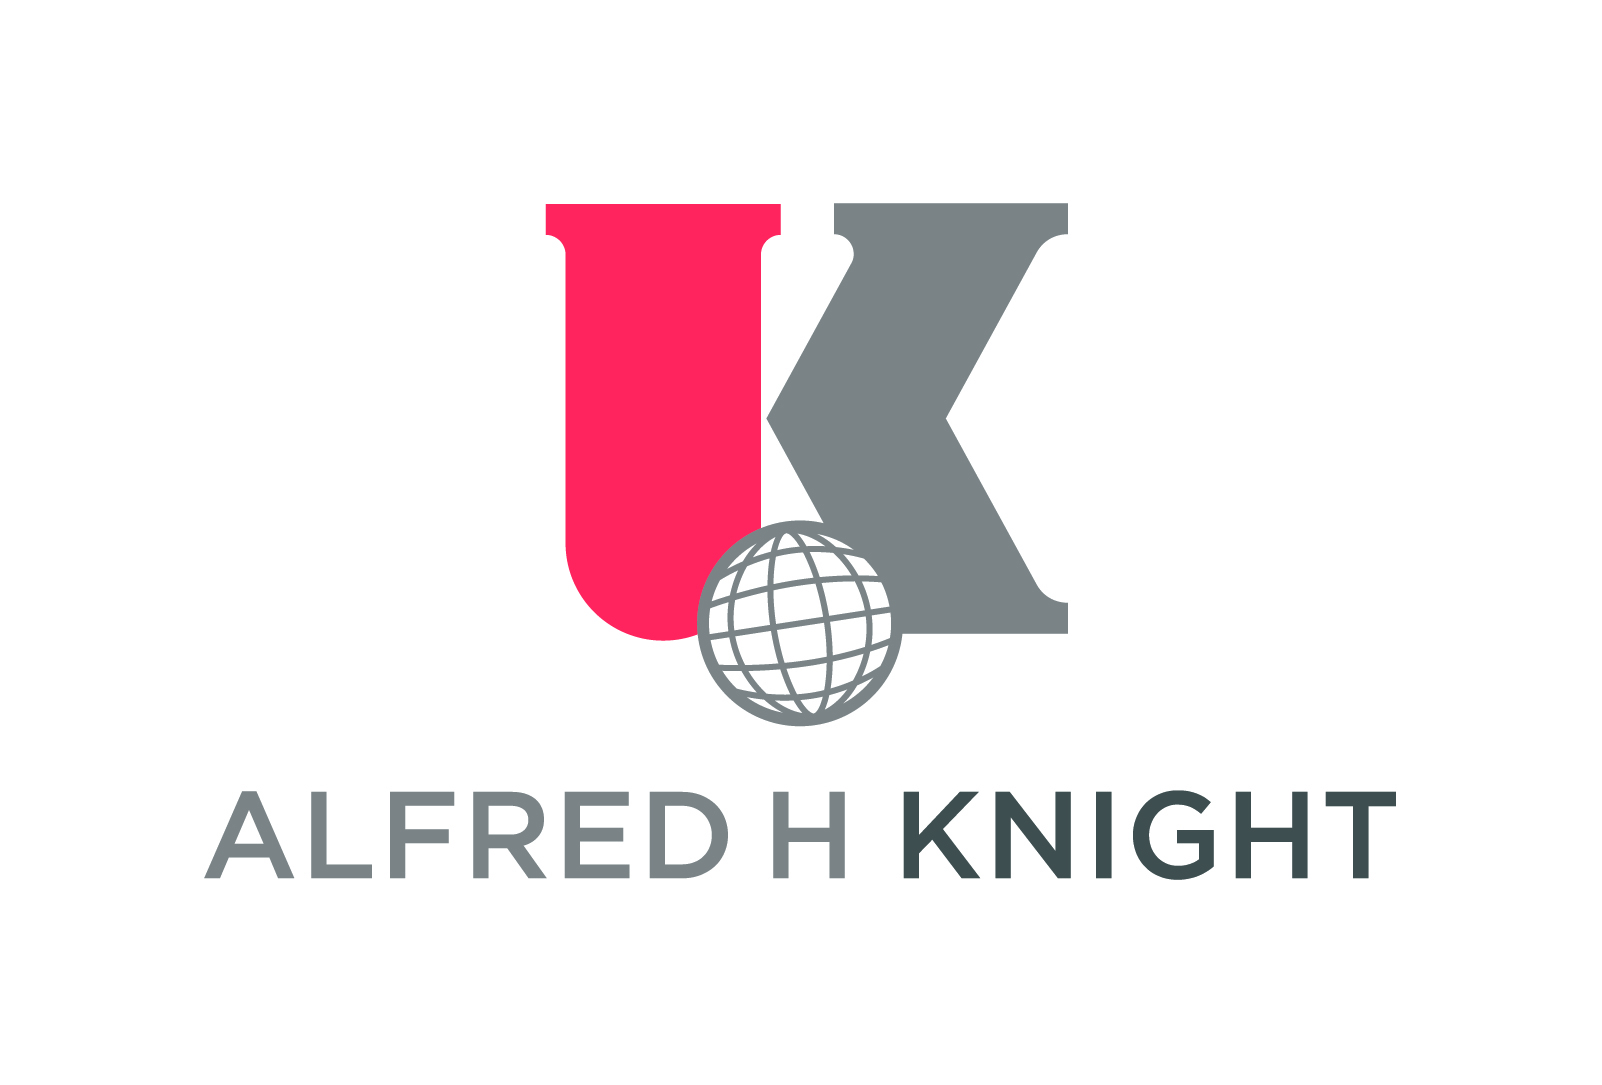 Alfred H Knight (AHK)